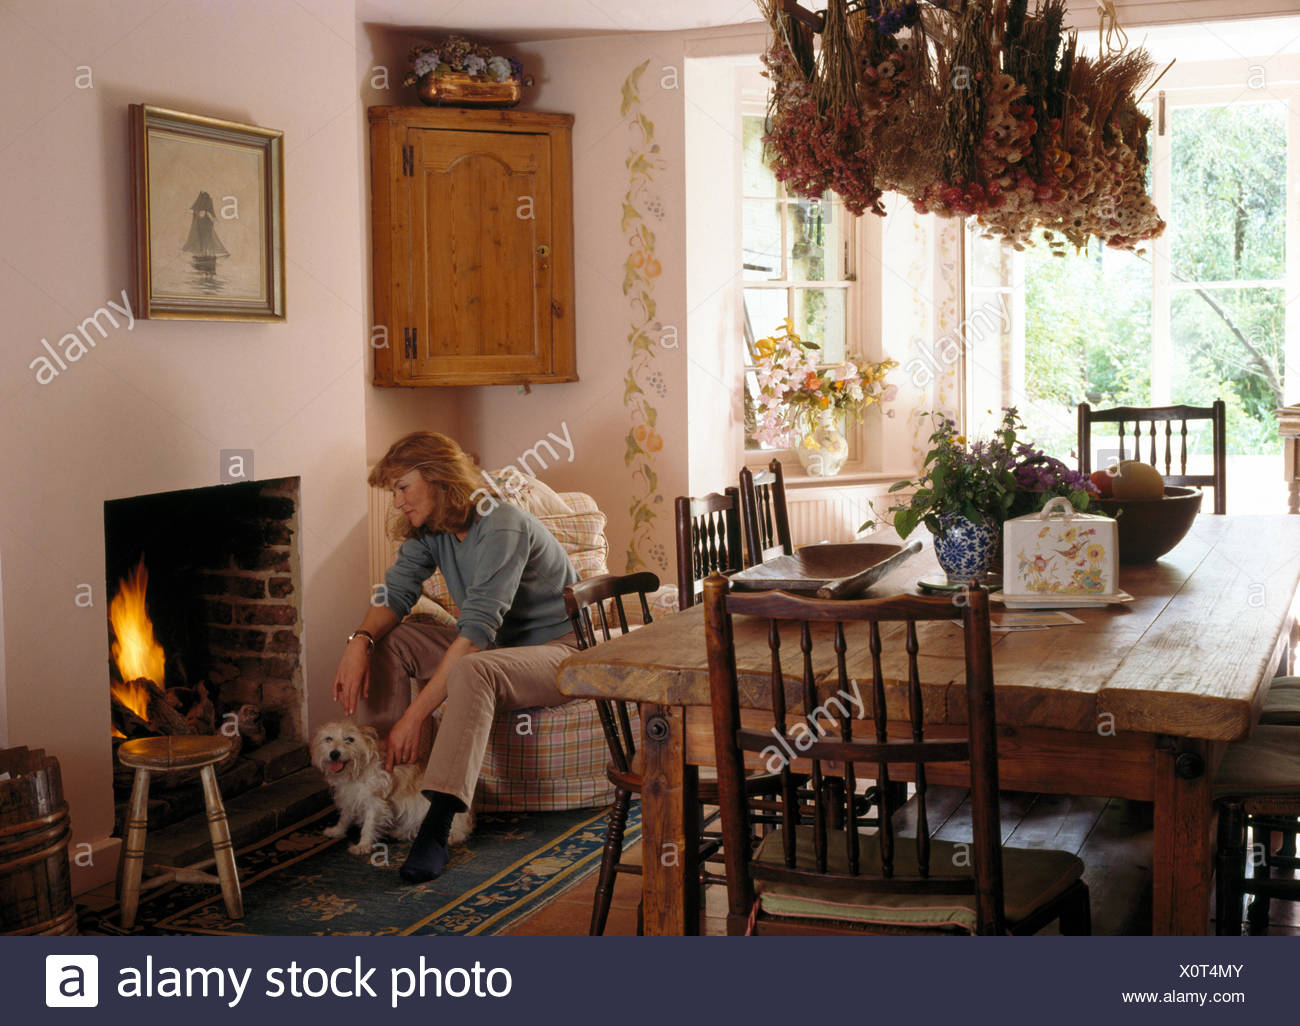 Woman Sitting With A Small Dog Beside Dining Room Fireplace